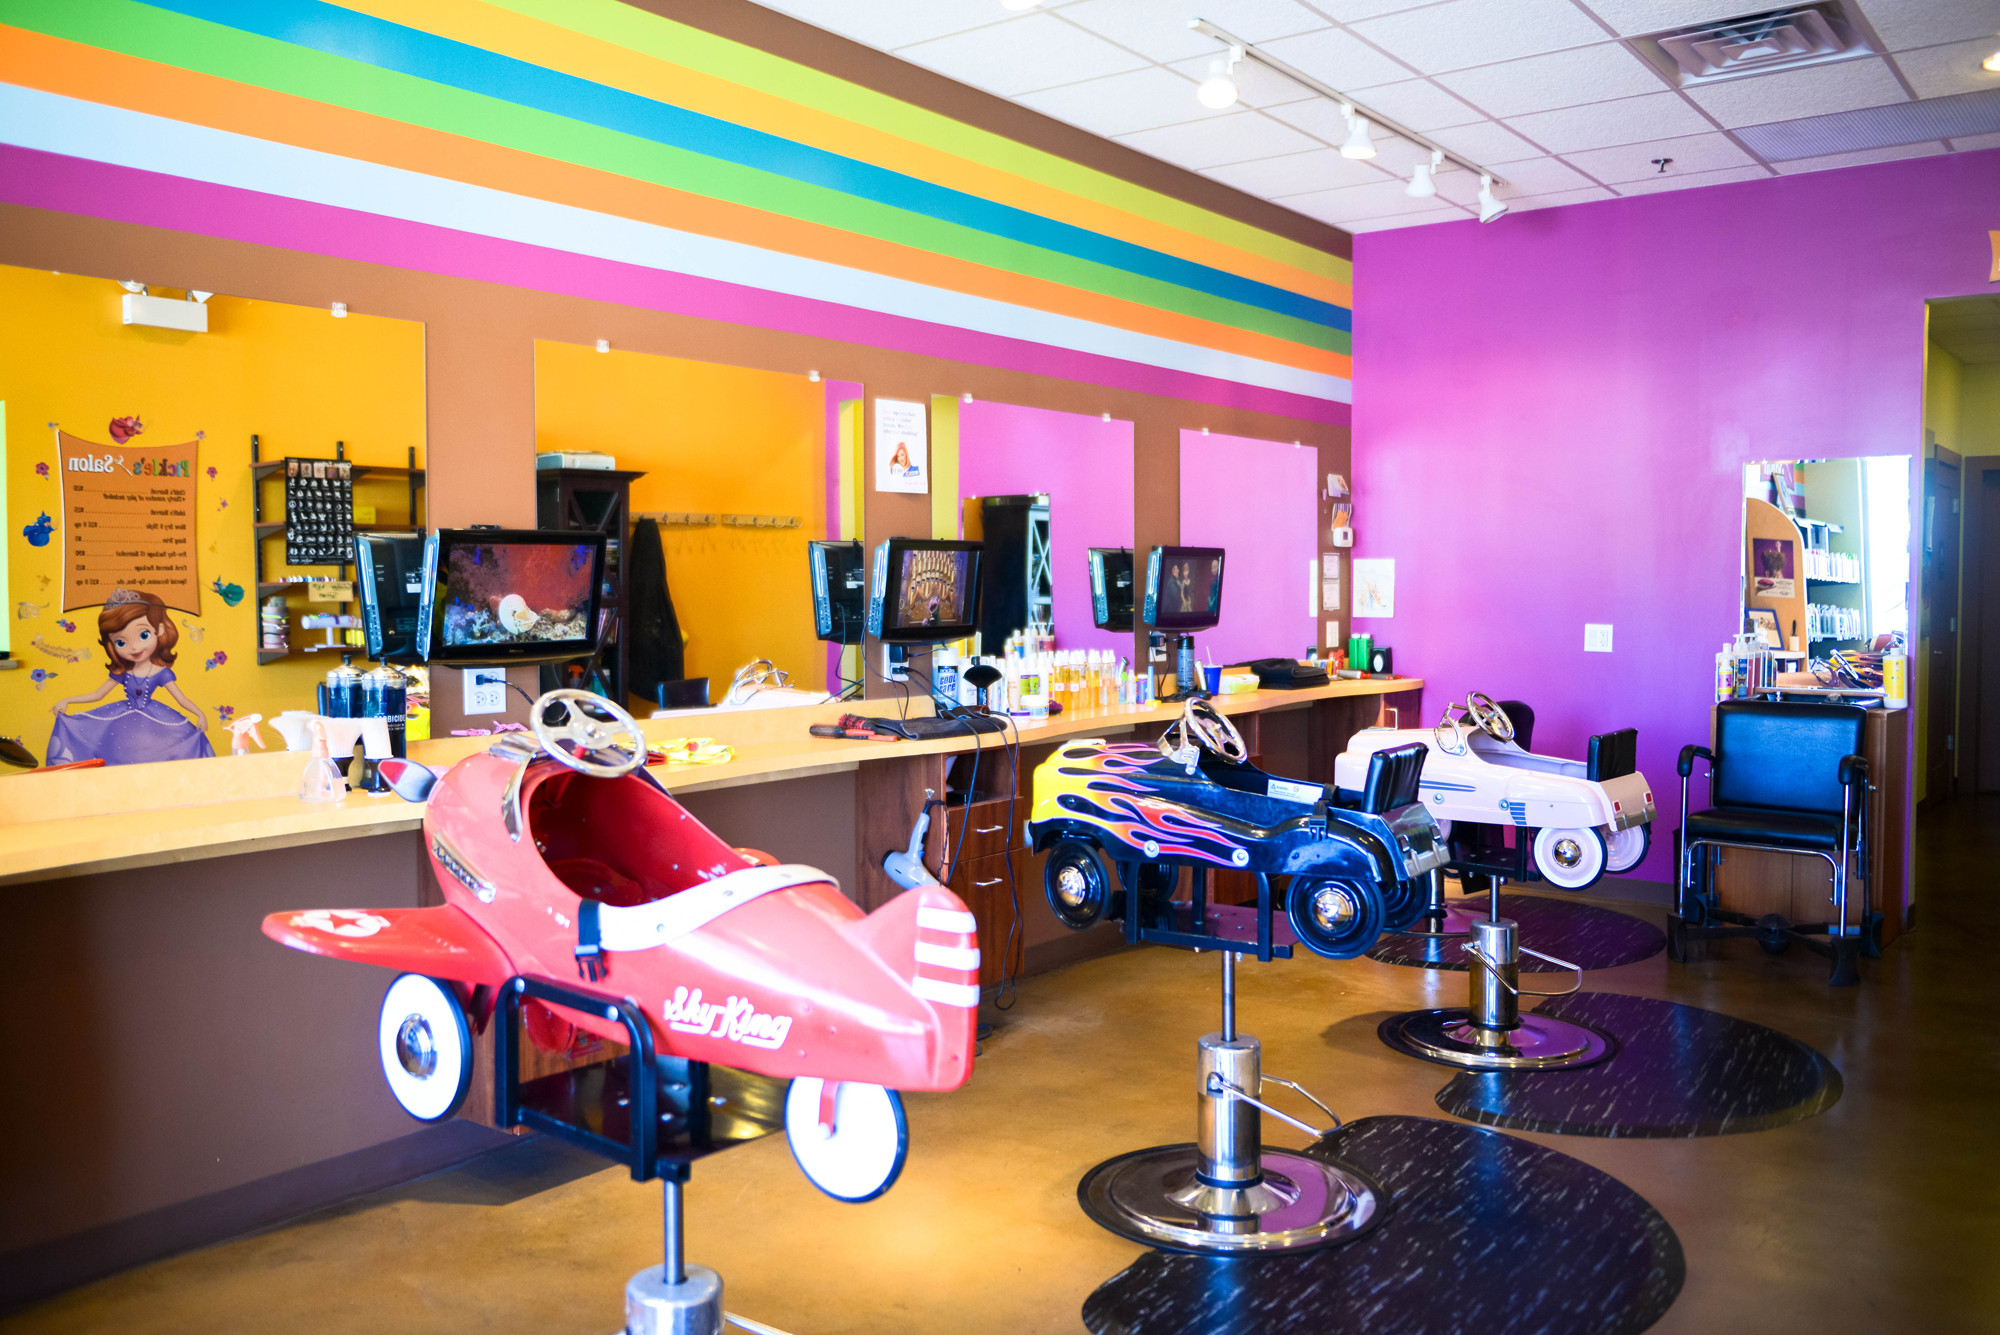 Best ideas about Kids Haircuts Chicago . Save or Pin PREMIER SALON Now.